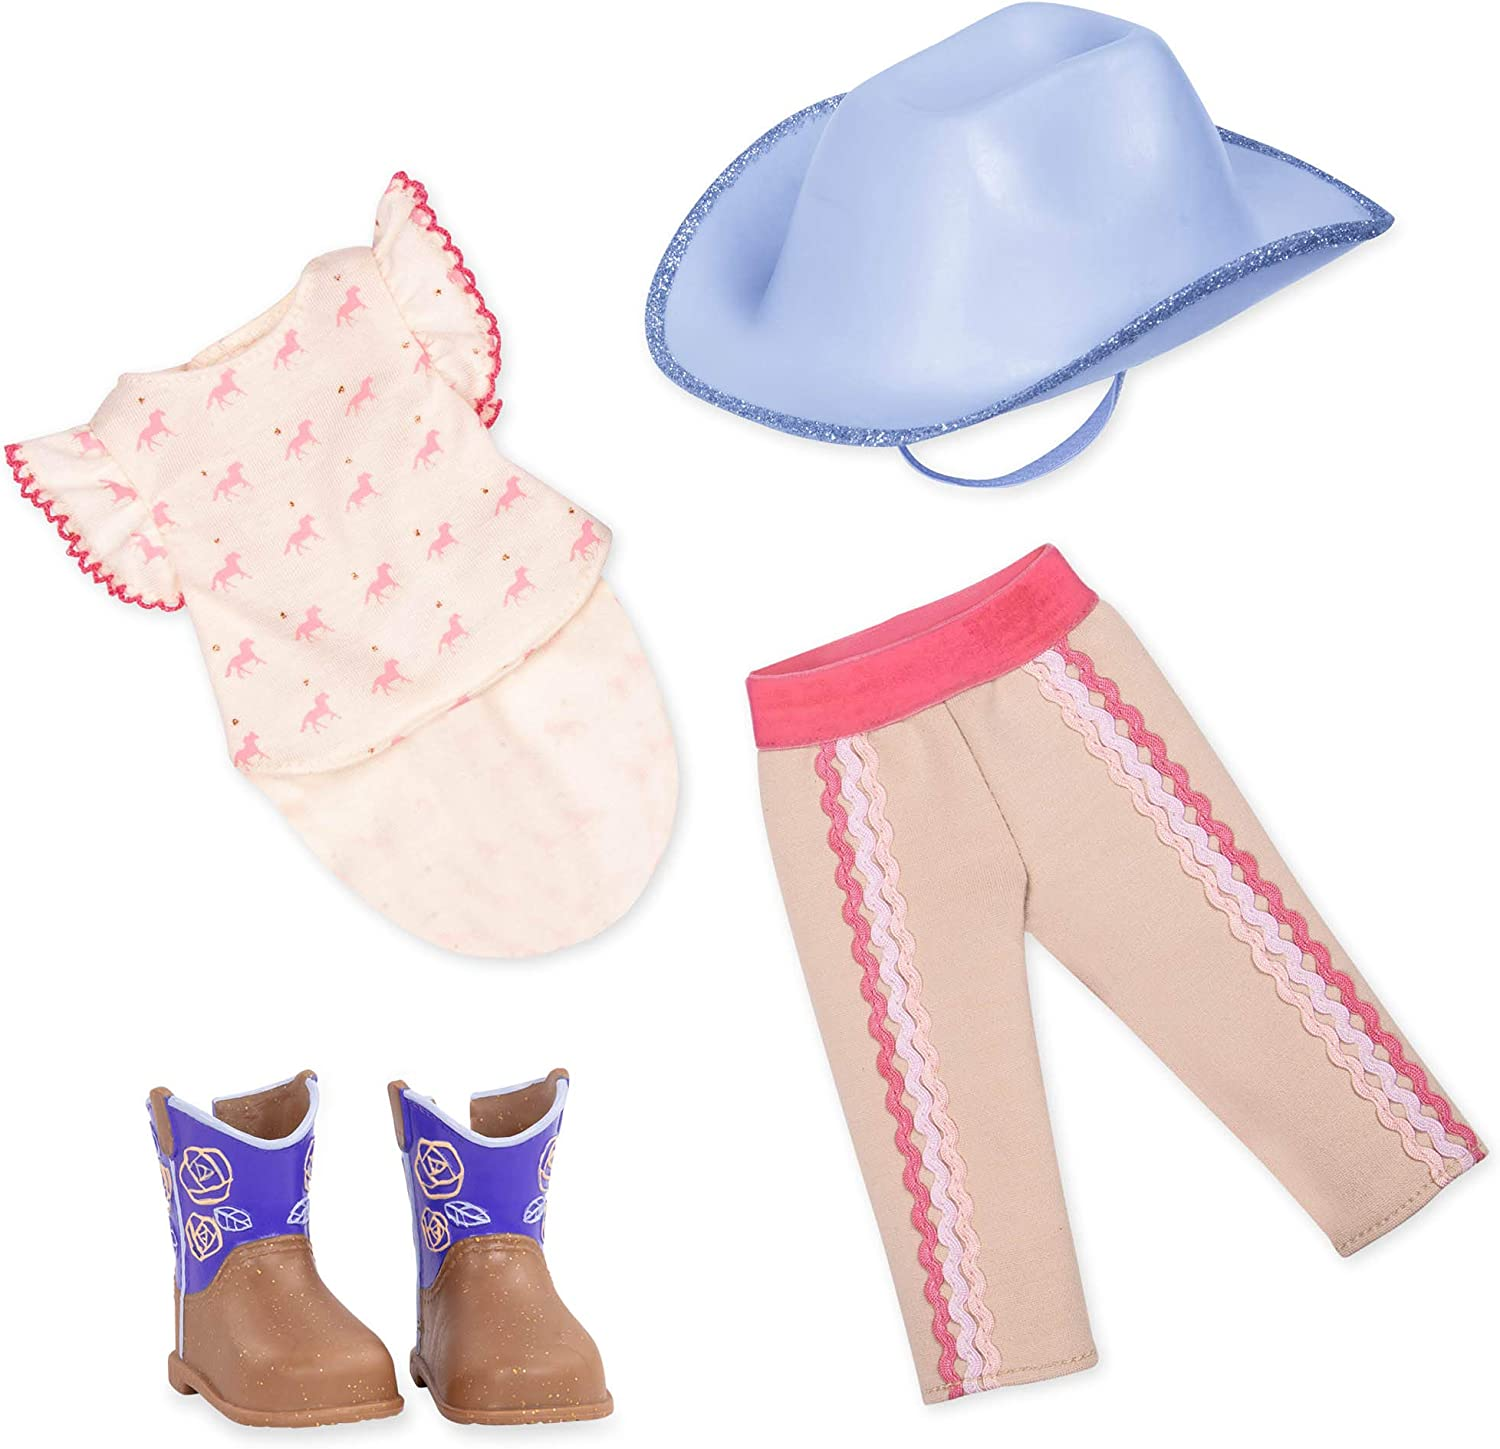 """Glitter Girls by Battat - Riding at Its Best! Equestrian Outfit -14"""" Doll Clothes– Toys, Clothes & Accessories for Girls 3-Year-Old & Up"""